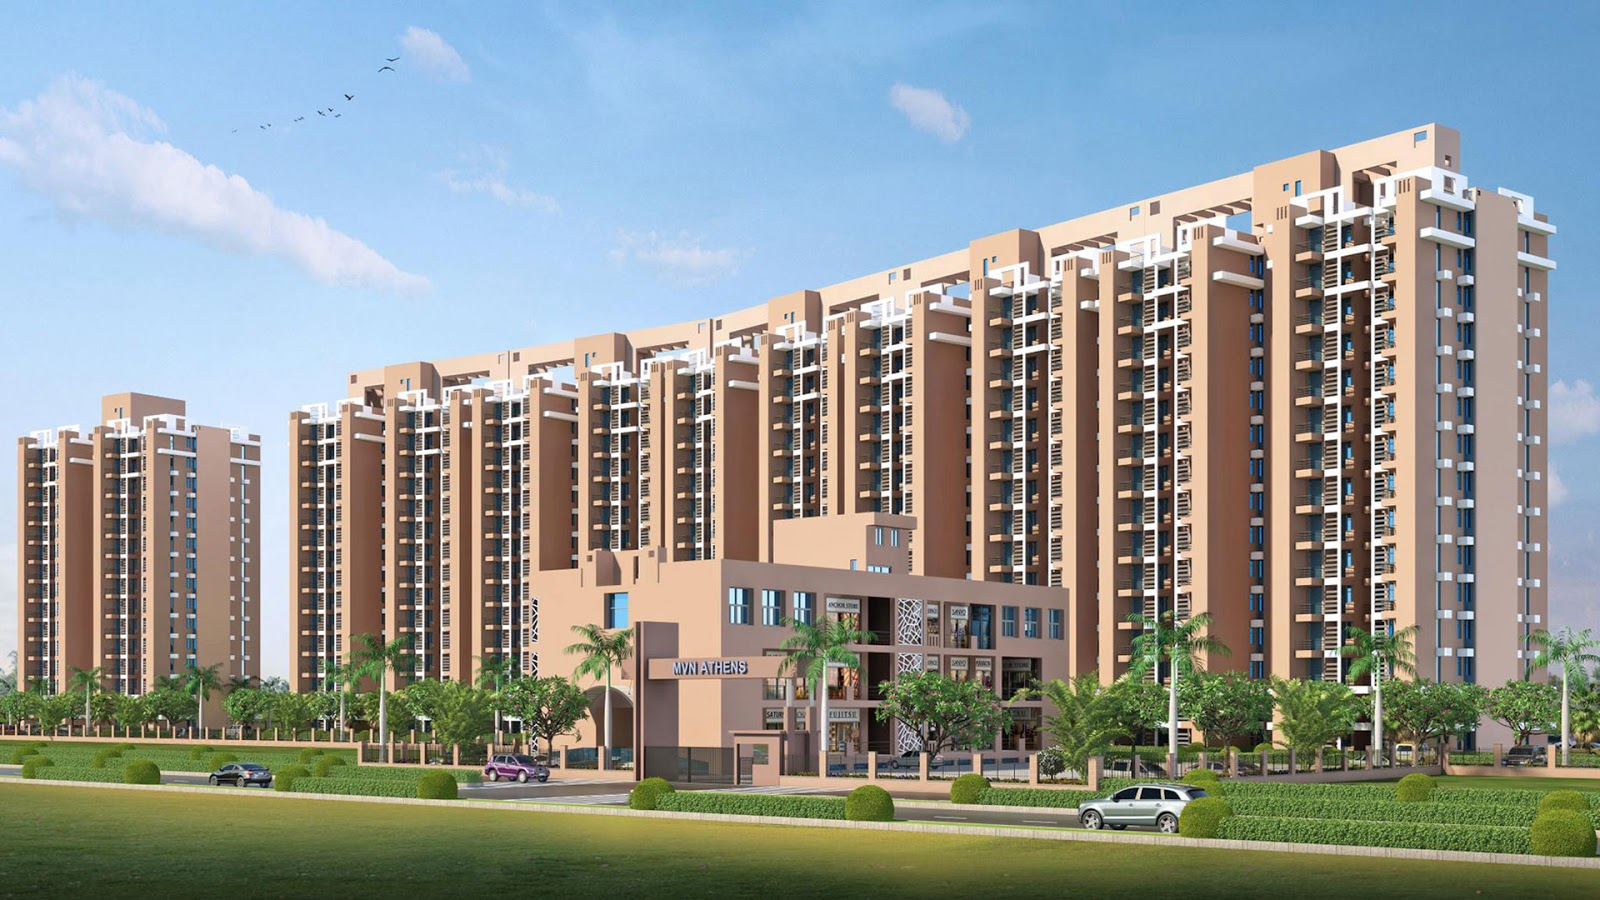 Pareena Om Apartments Sector 112 Gurgaon – Affordable Housing